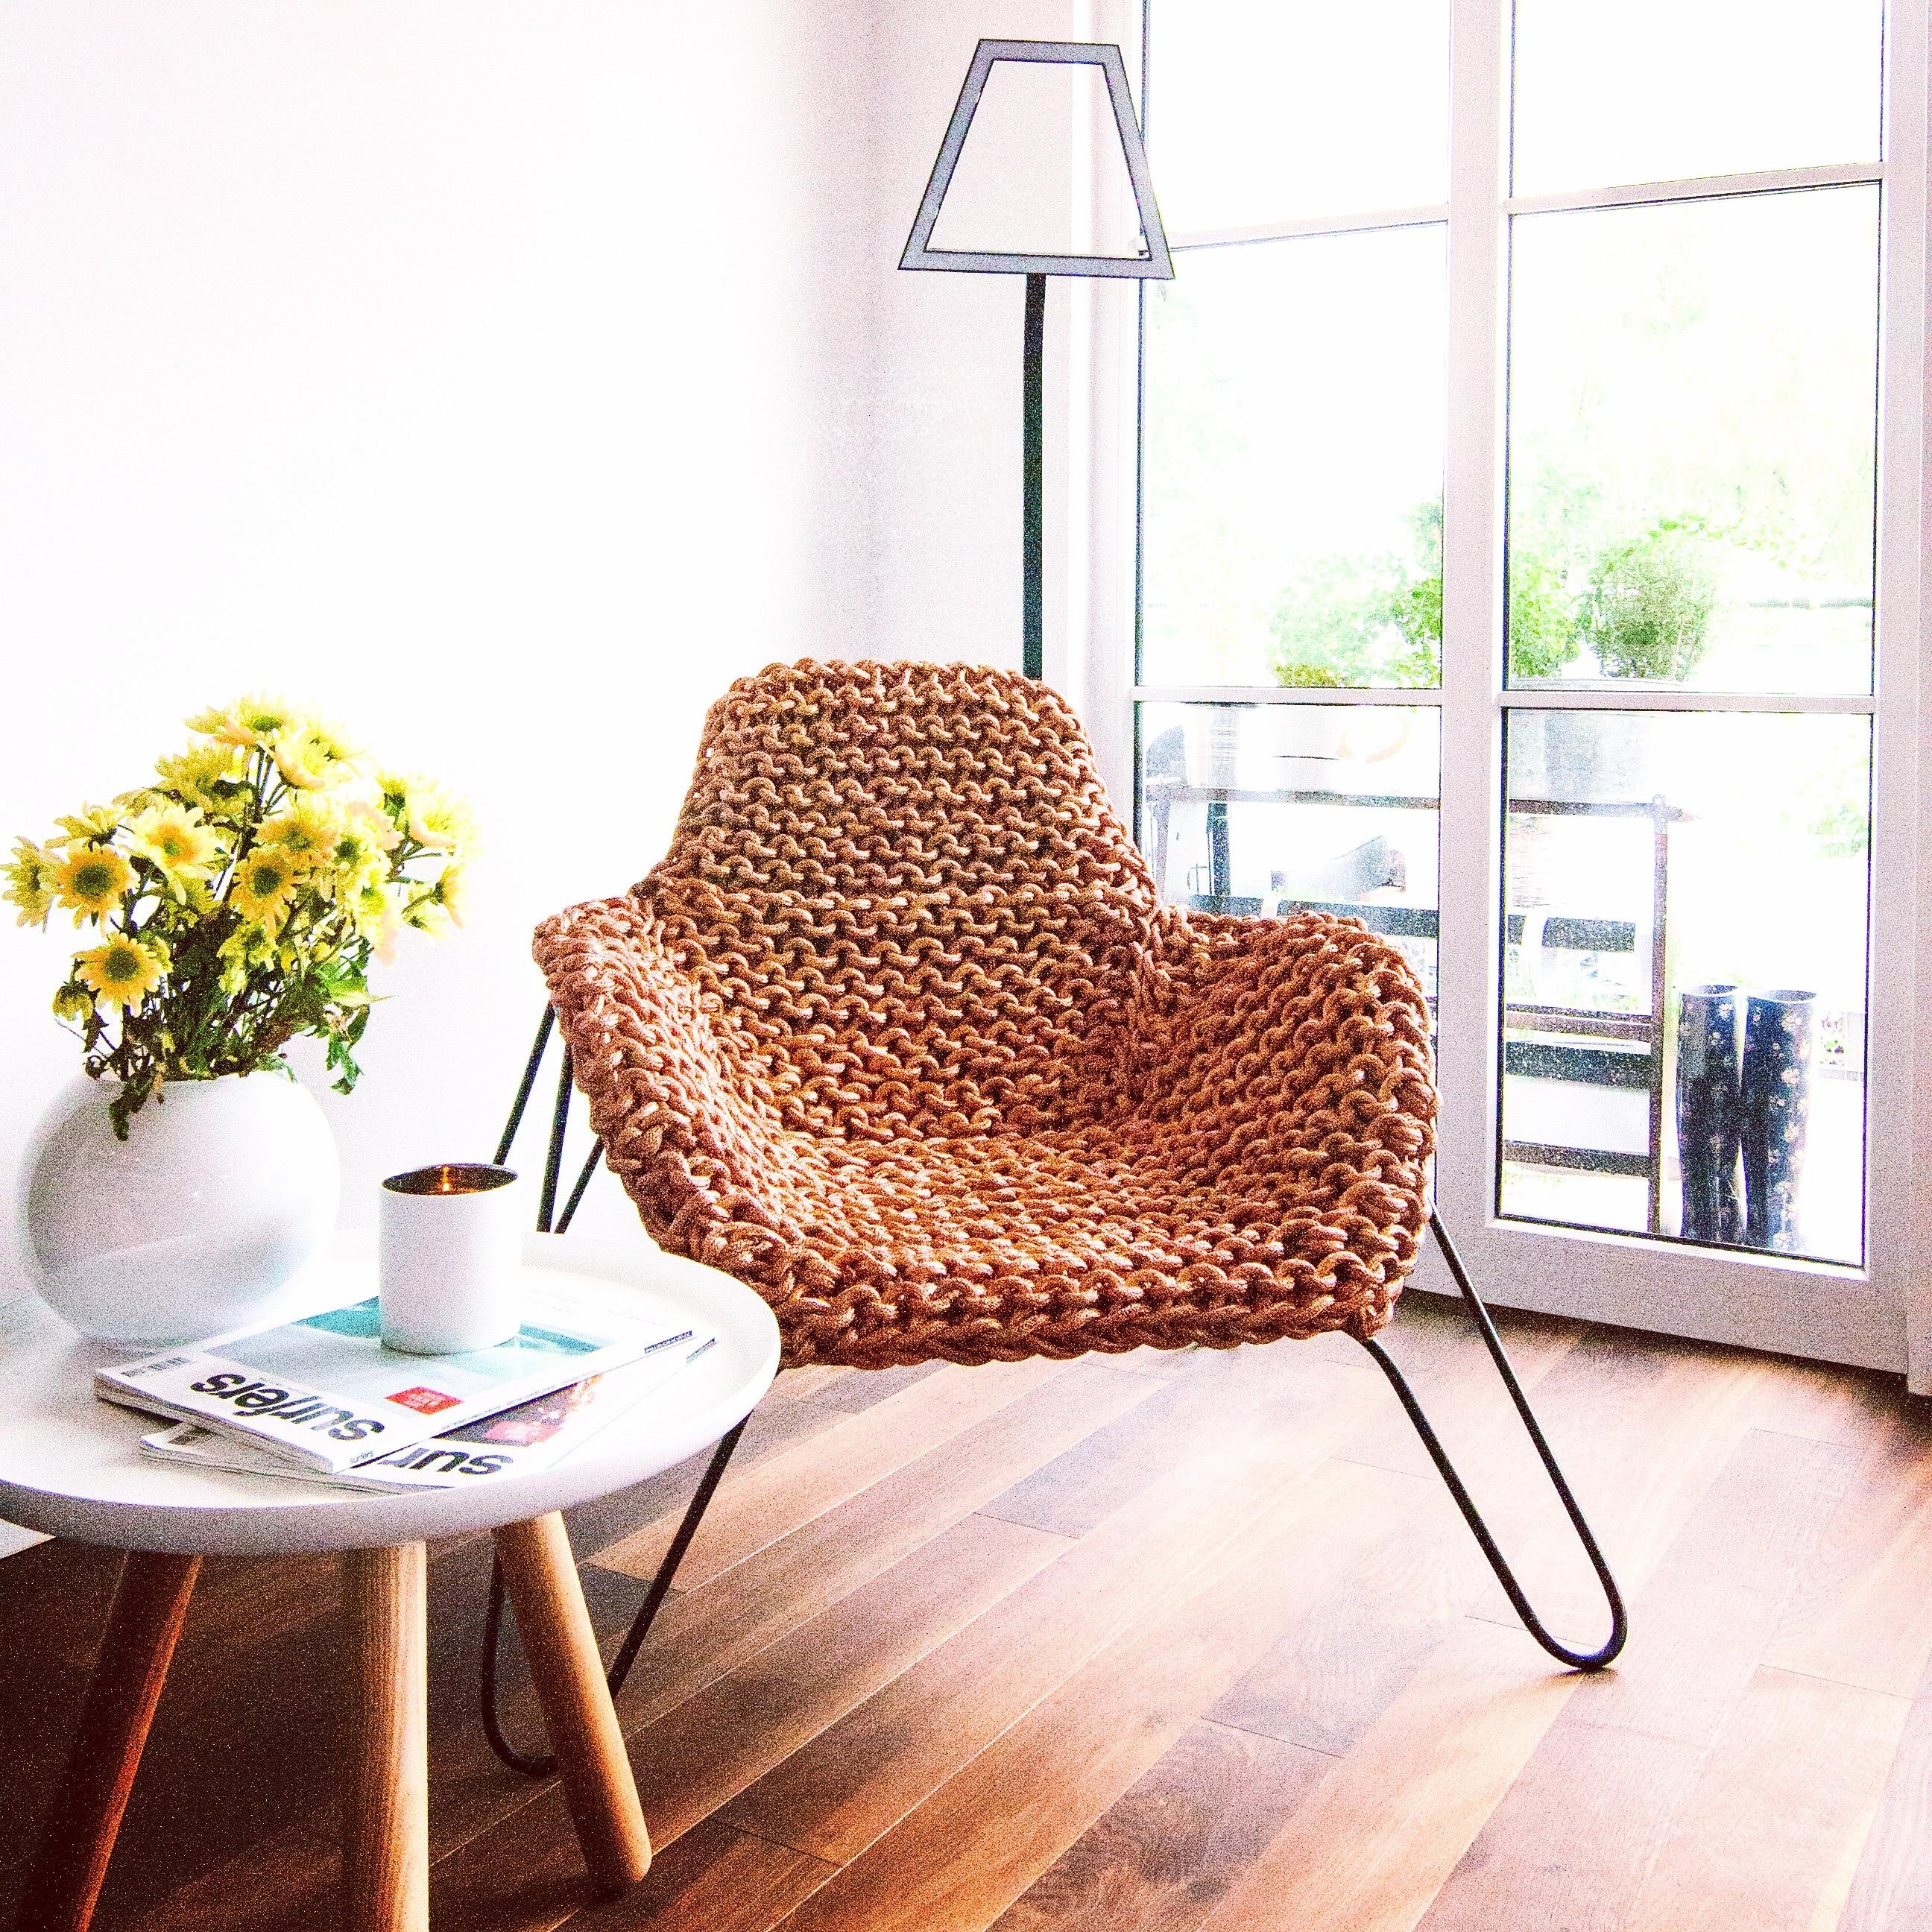 Copper Me Happy - a chair made out of copper Design: Marcella Breugl